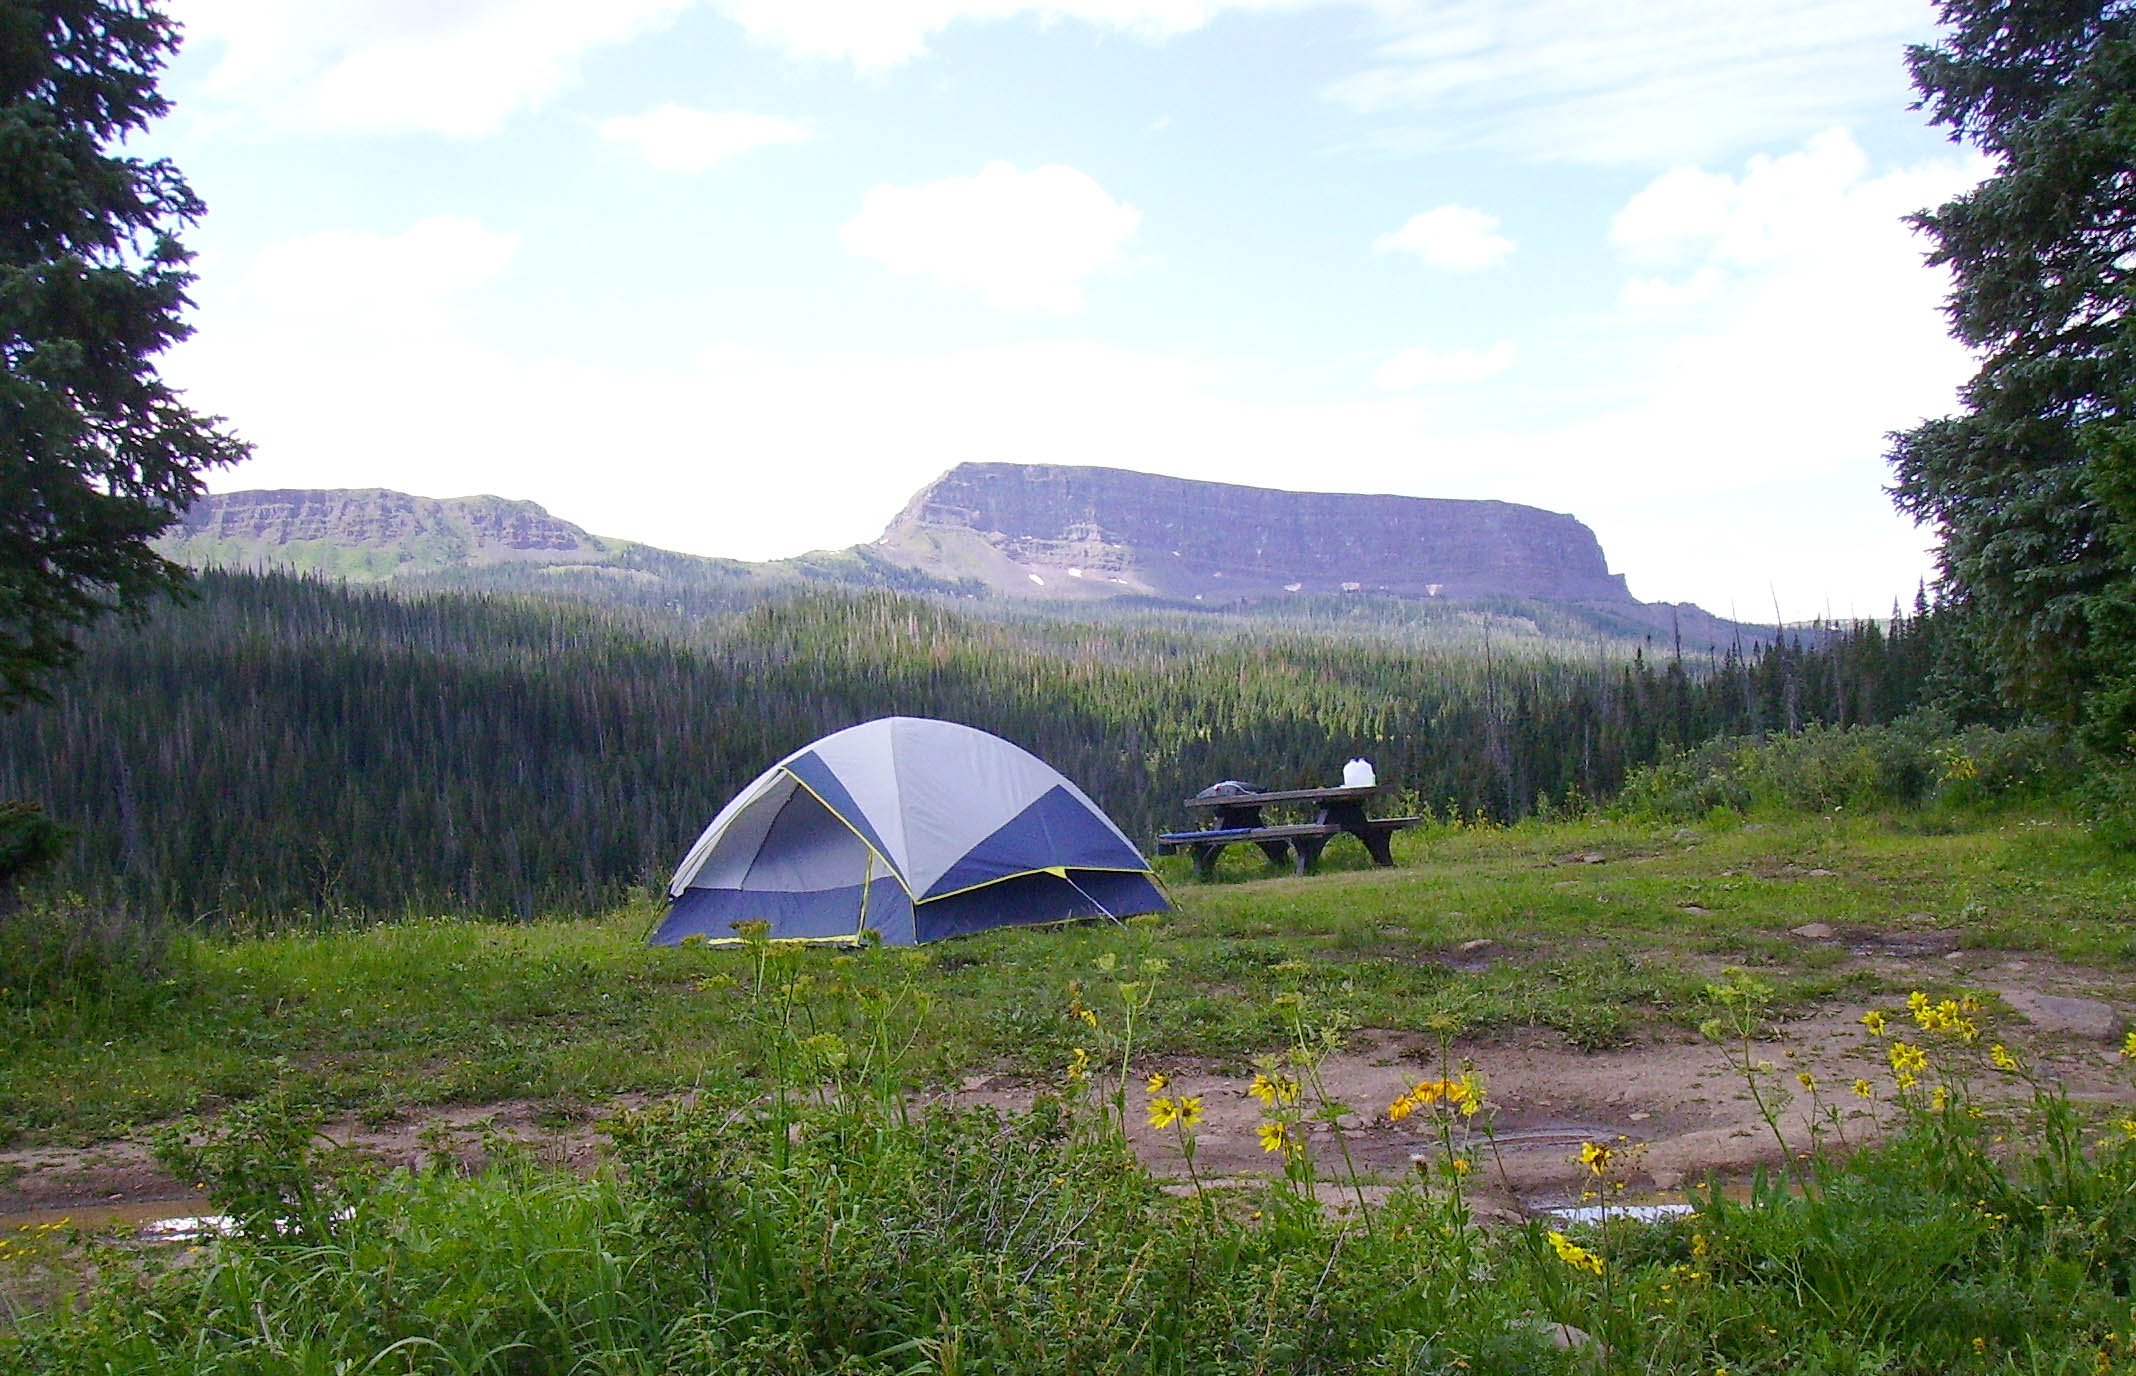 Medicine Bow-Routt National Forests & Thunder Basin National